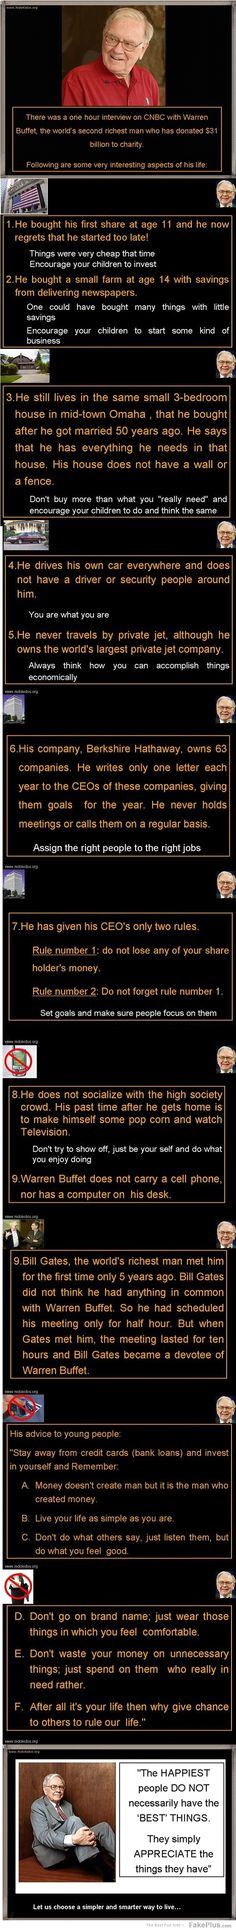 even the 2nd richest man in the world is simple